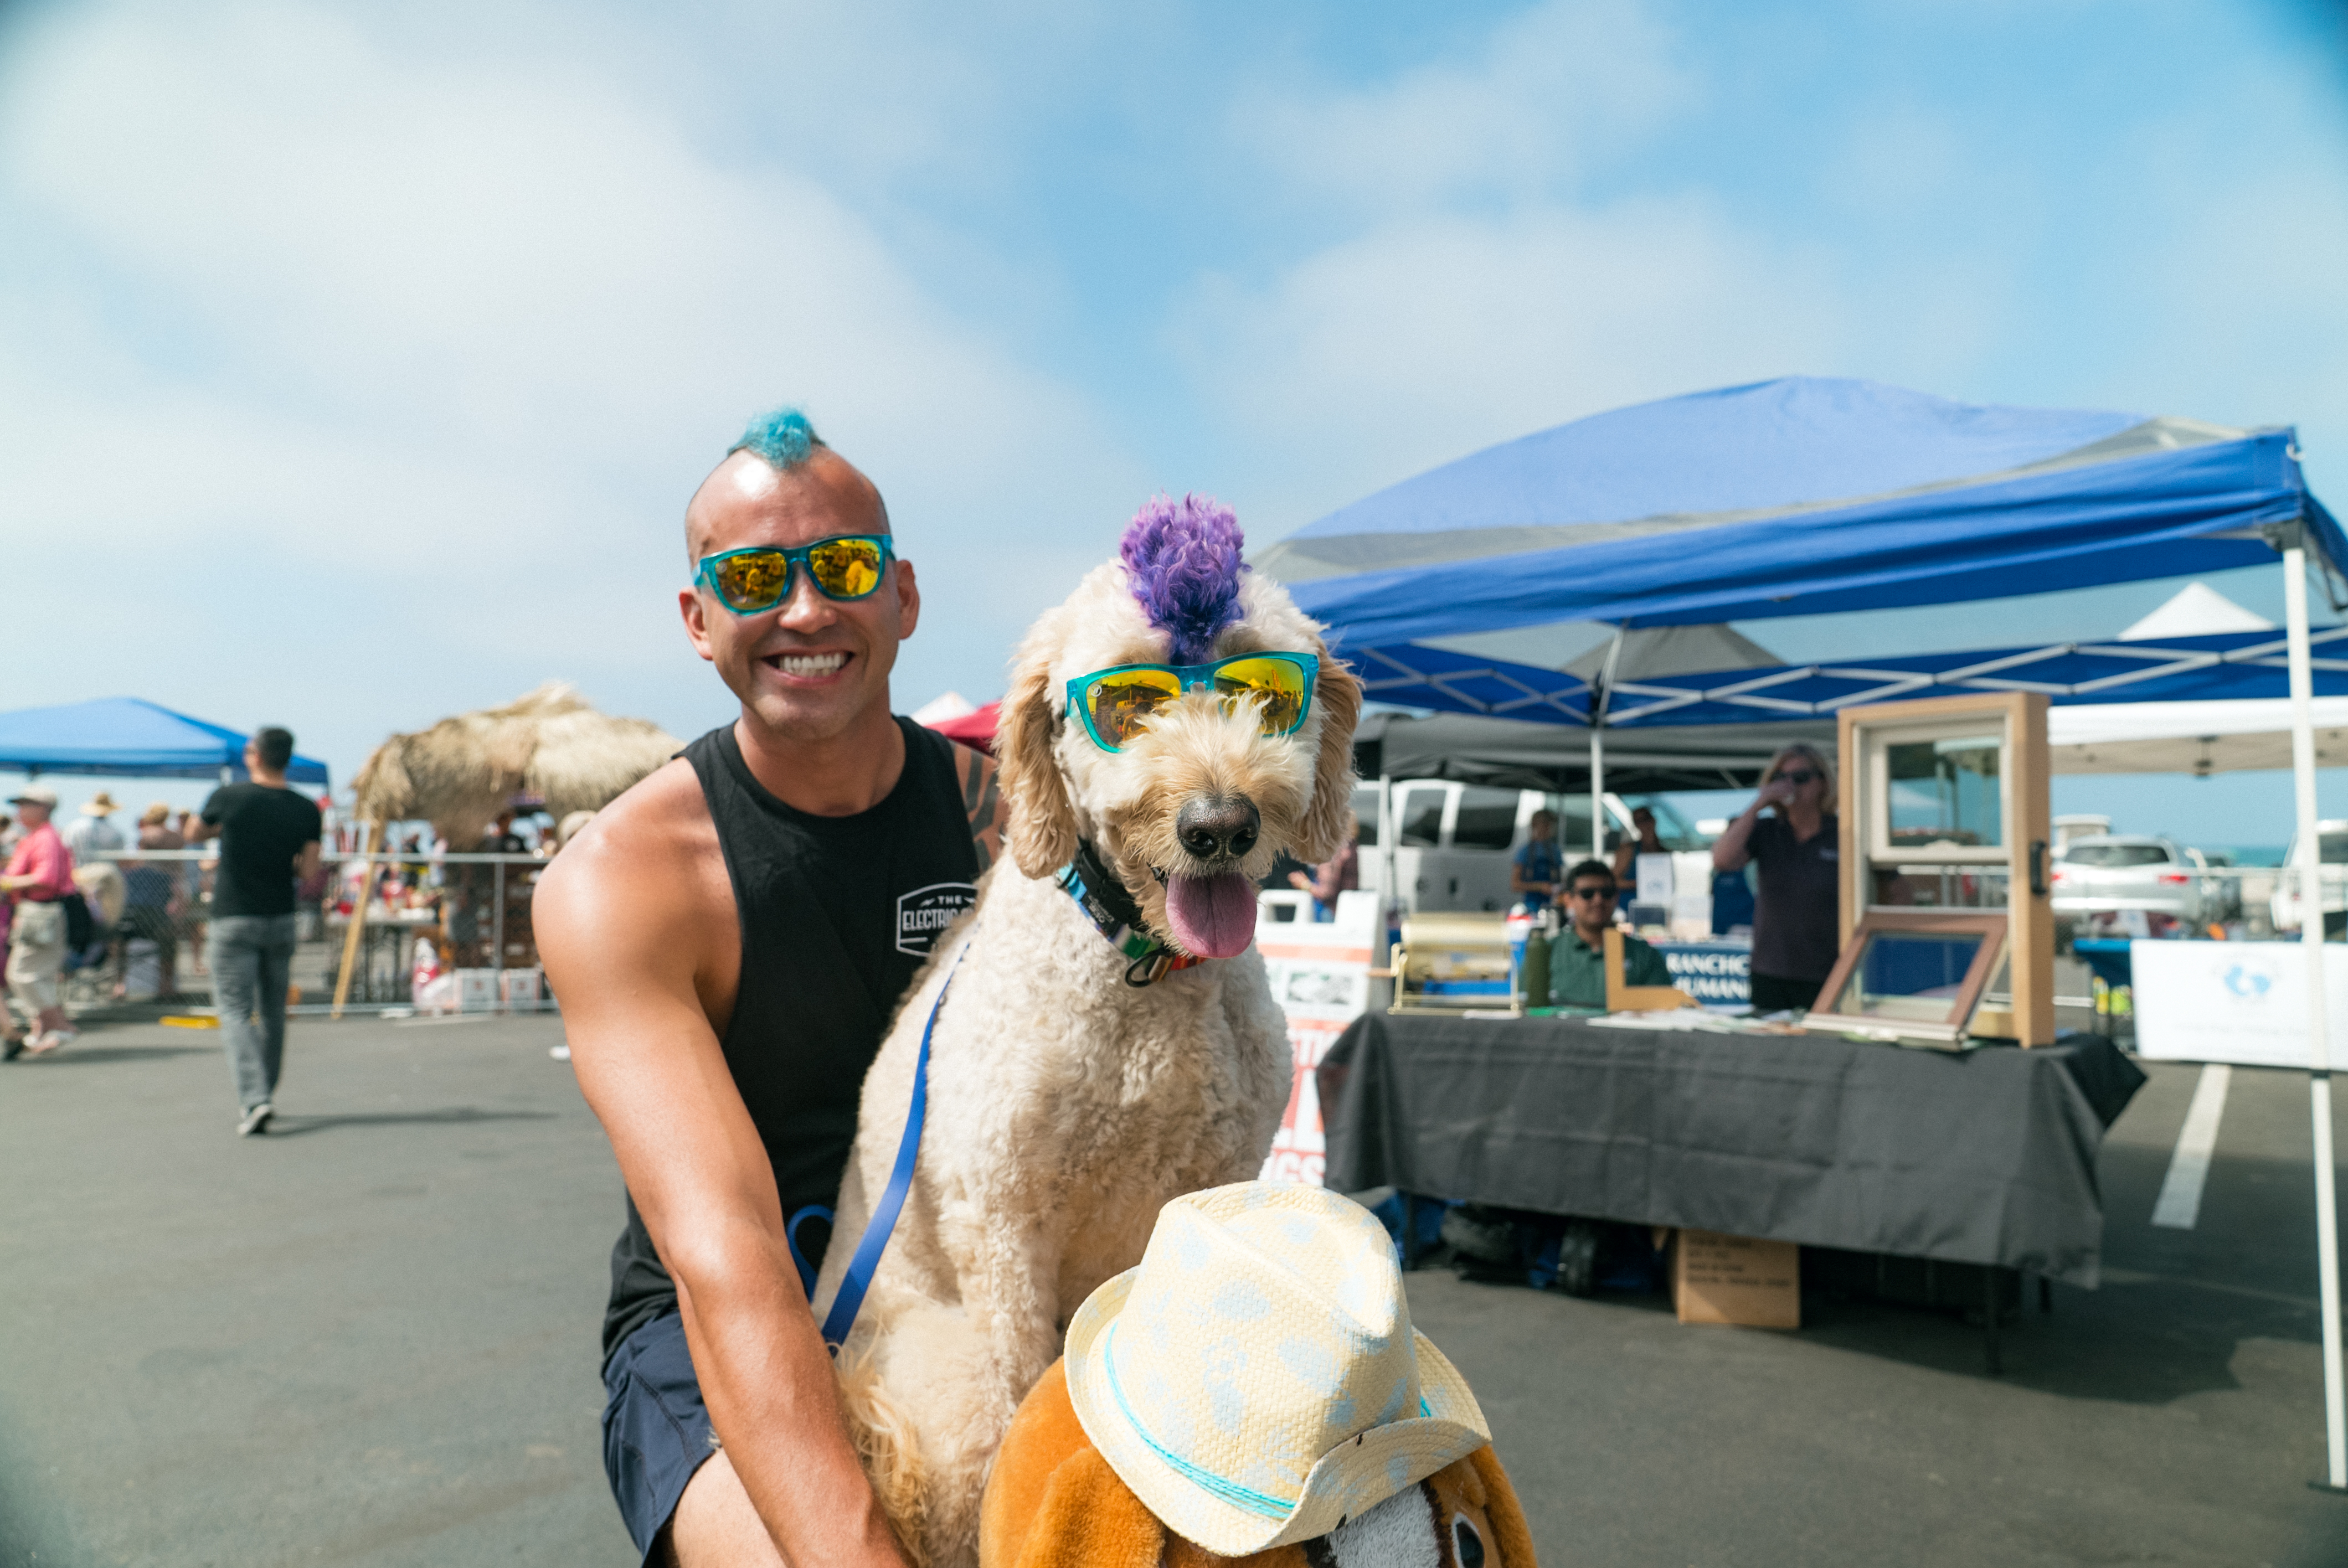 2018 Best Dog and Owner Outfit